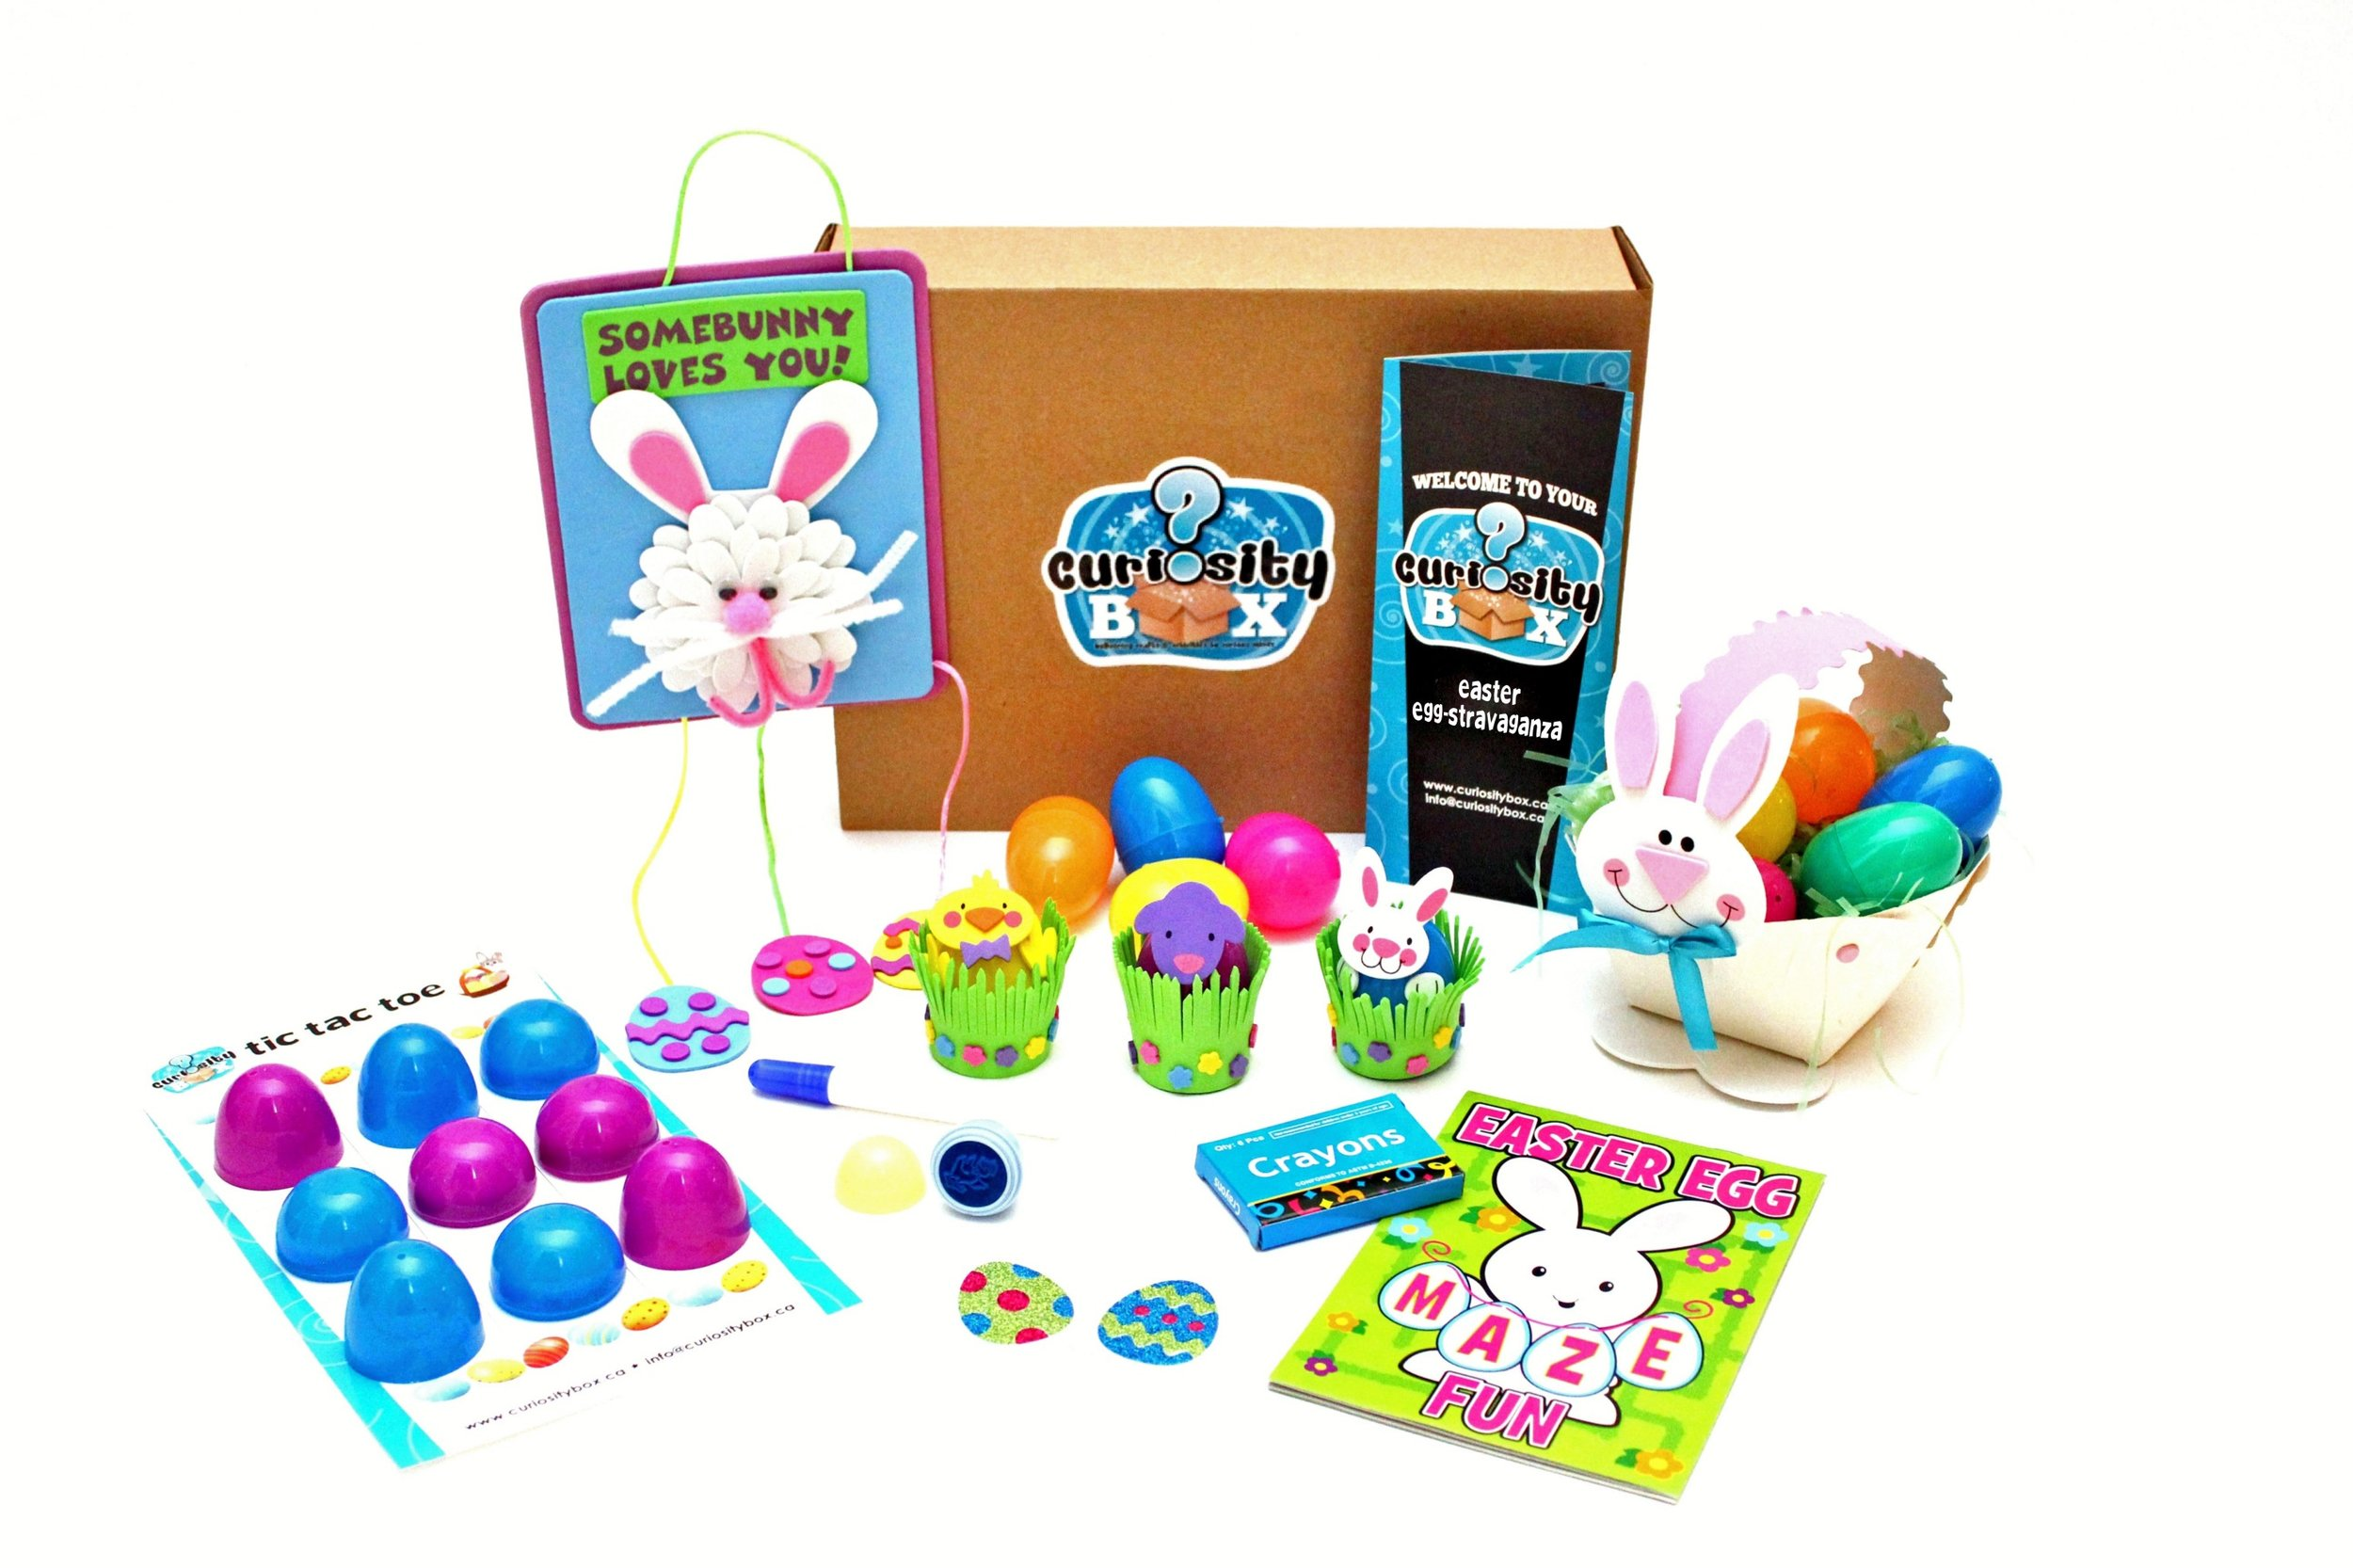 Curiosity_Box_Easter_egg-stravaganza.jpg